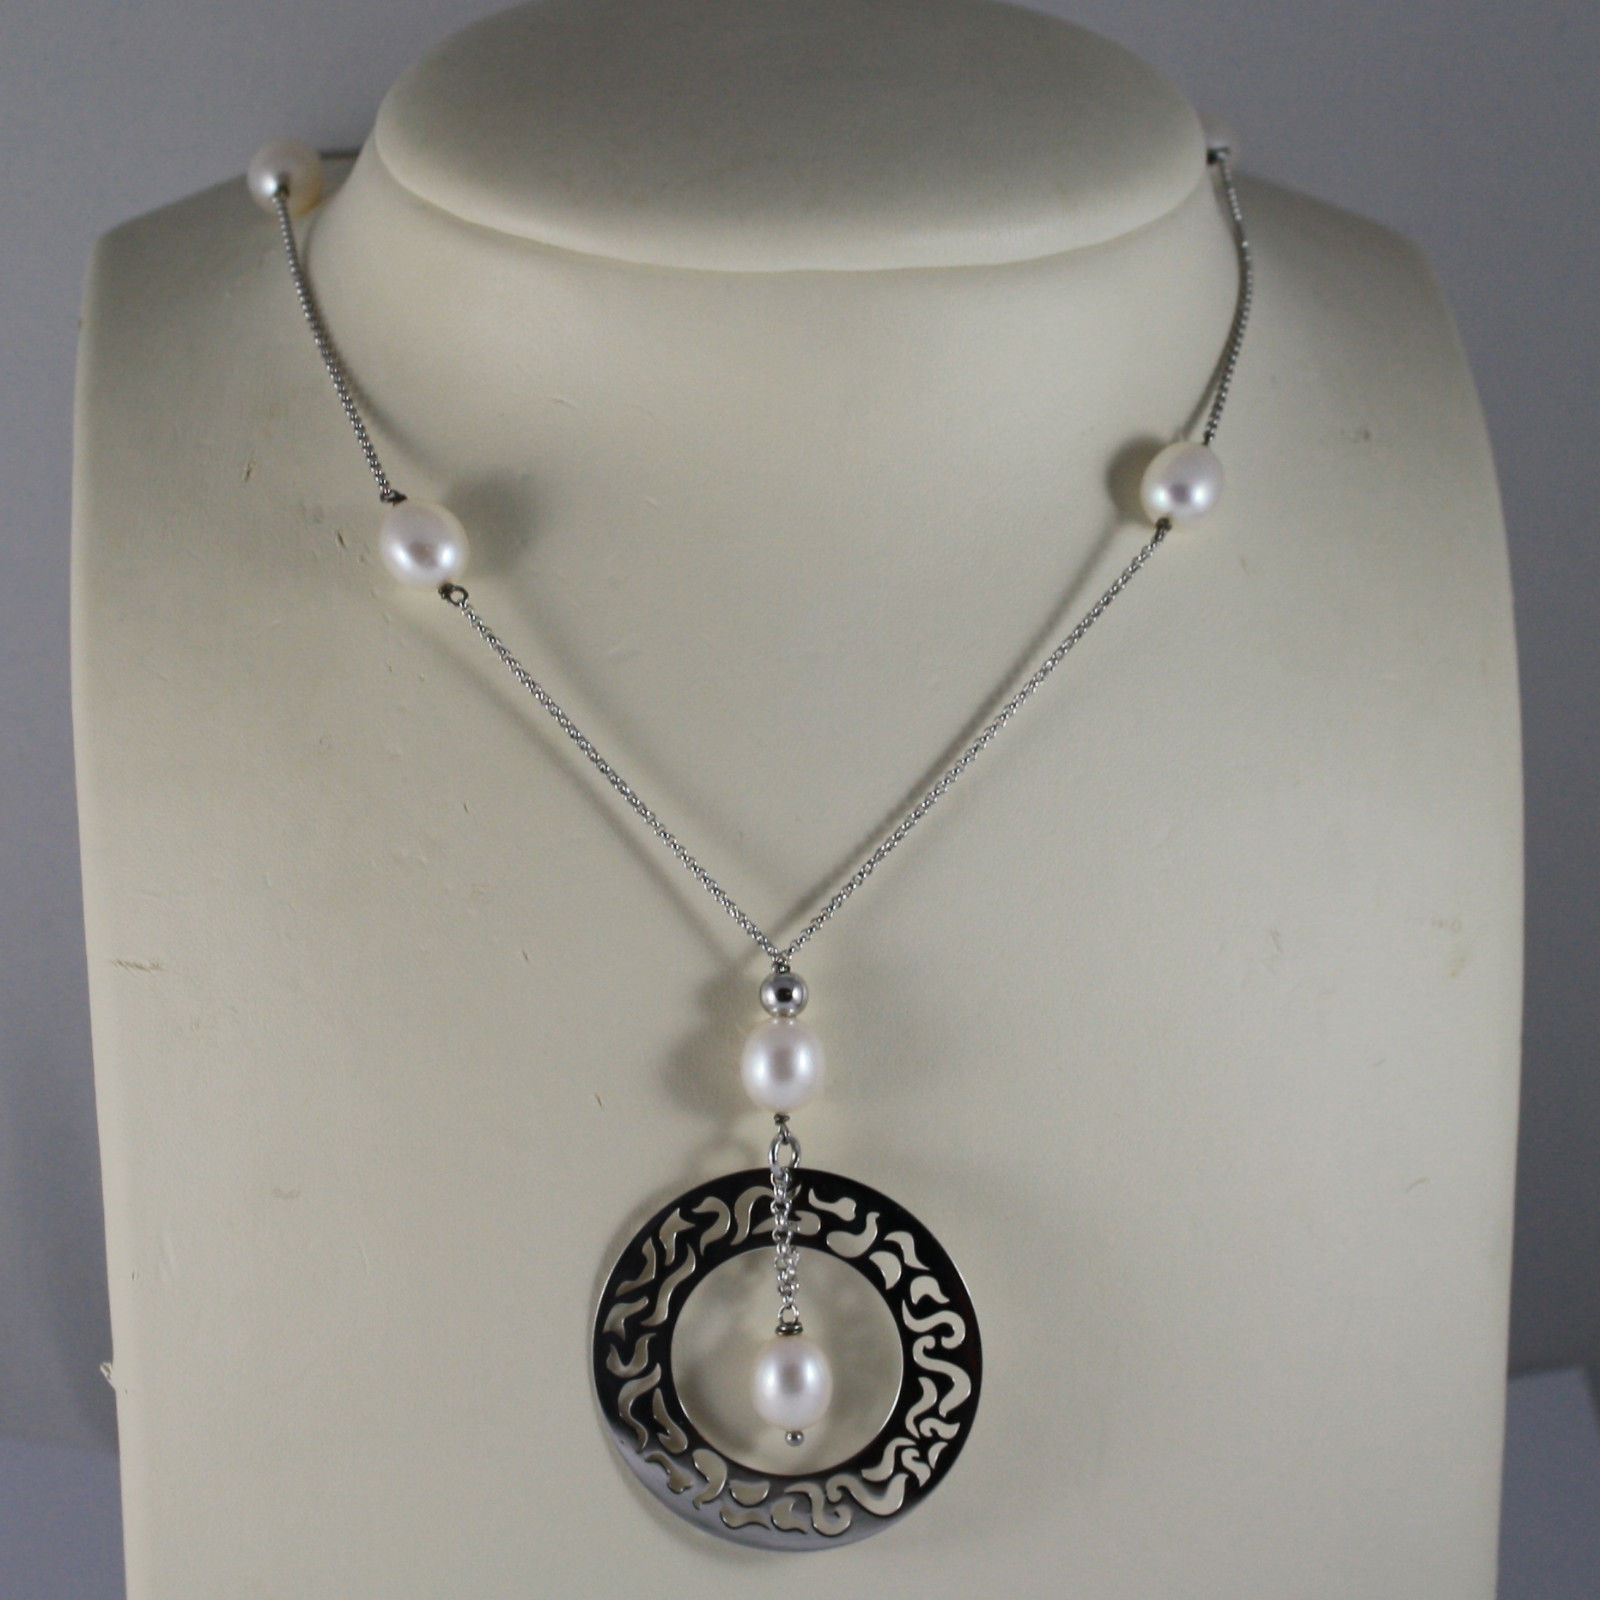 .925 RHODIUM SILVER NECKLACE WITH FRESHWATER WHITE PEARLS AND PERFORATED DISC